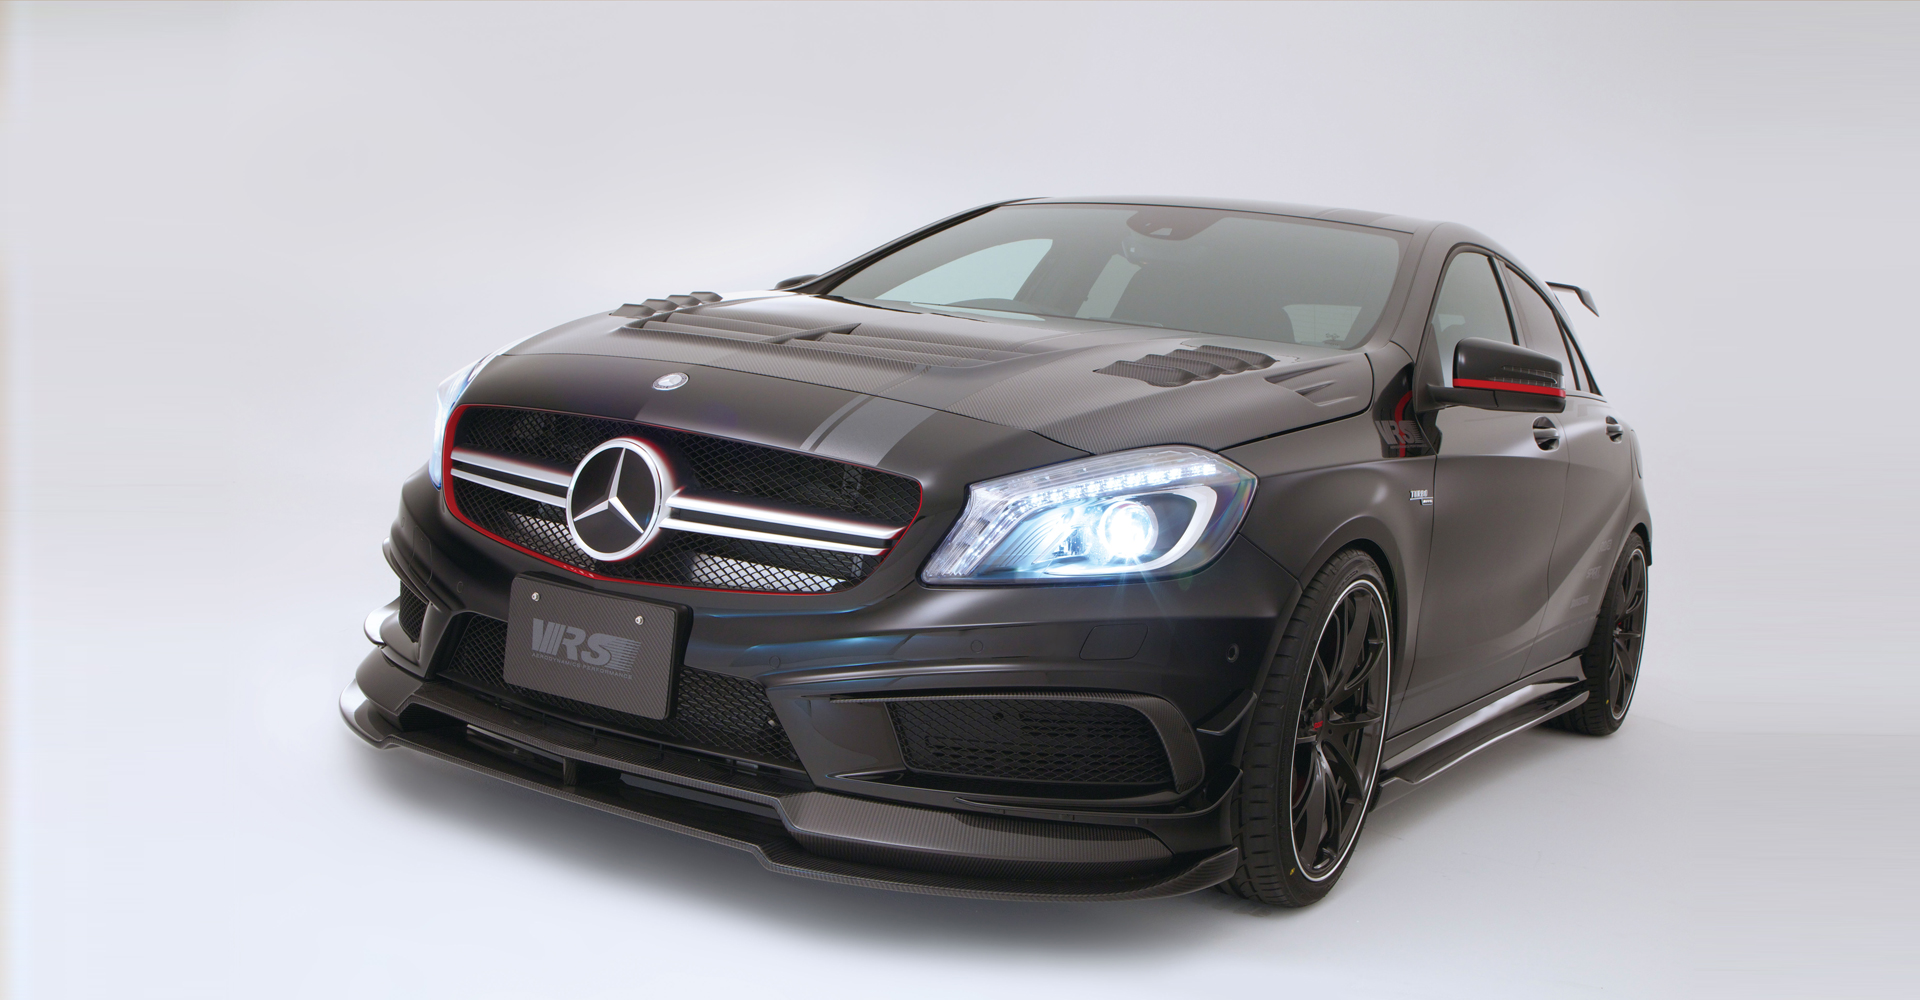 vrs mercedes a45 amg. Black Bedroom Furniture Sets. Home Design Ideas